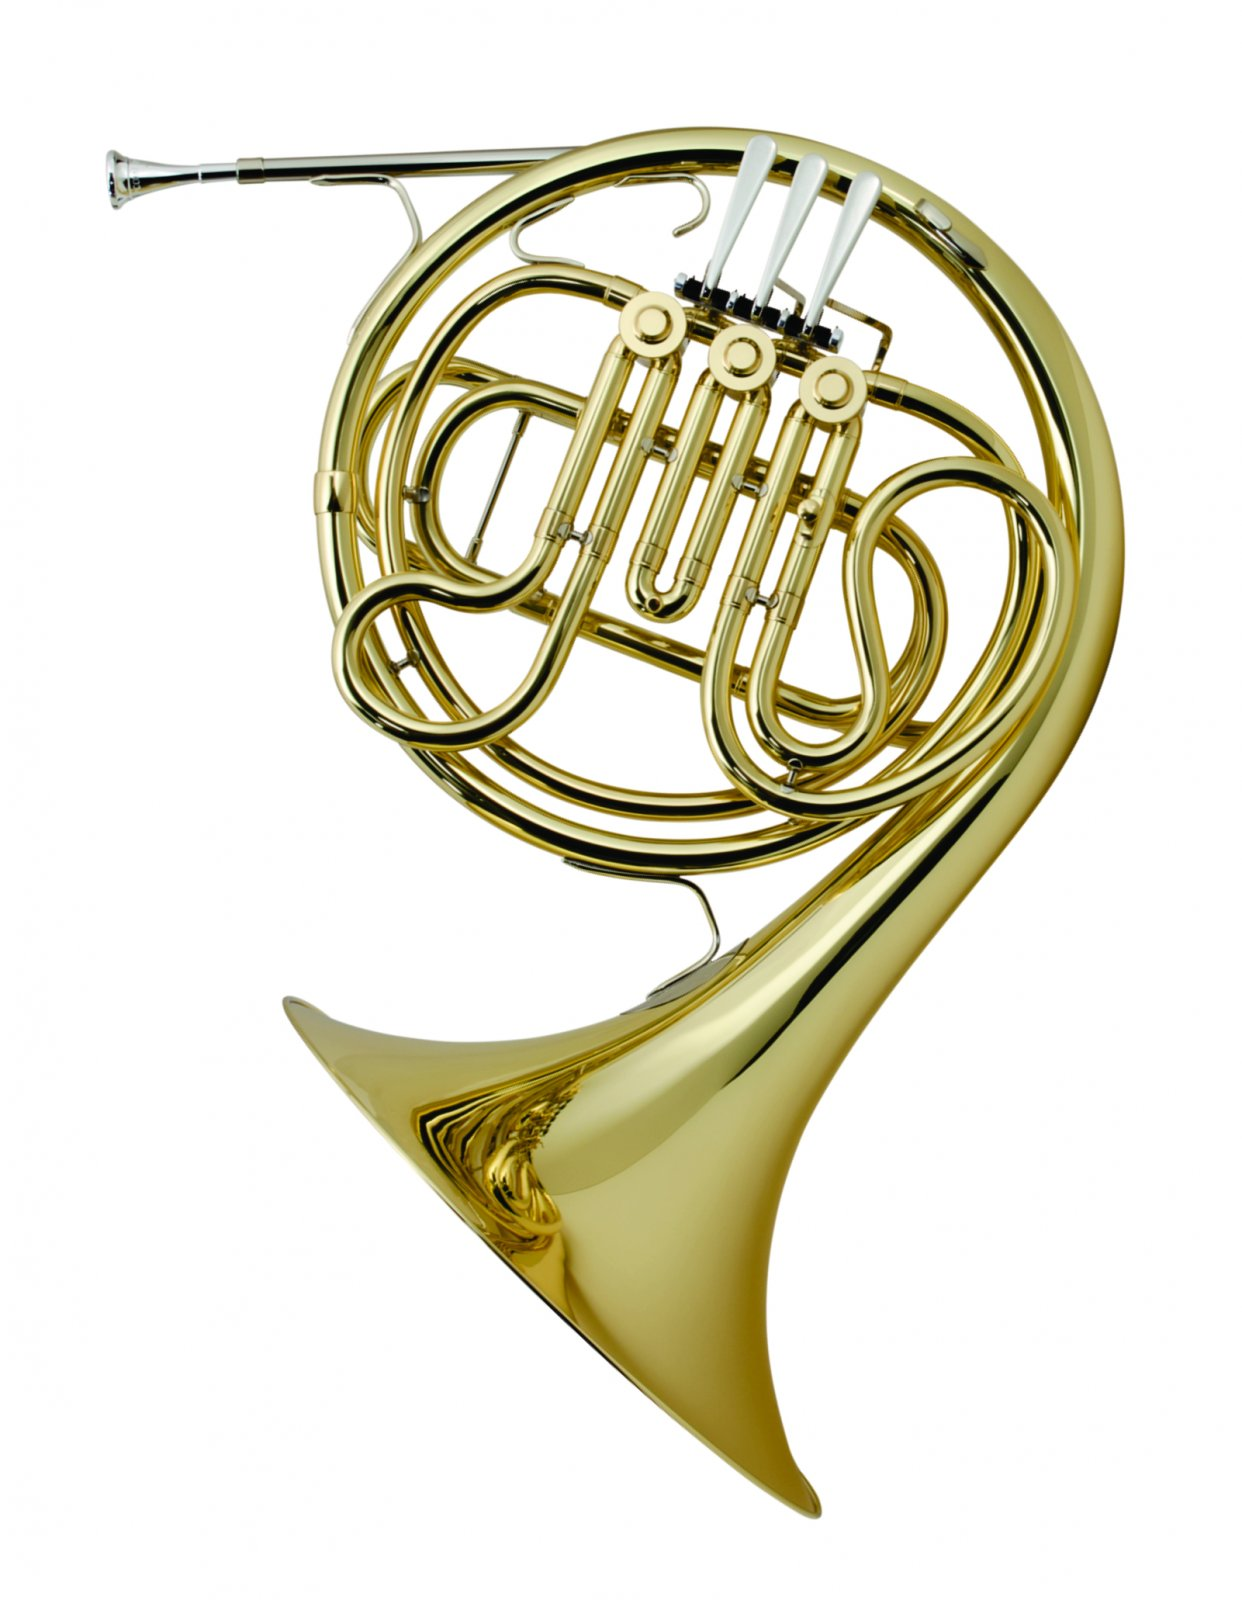 CONN 14D Student Single French Horn